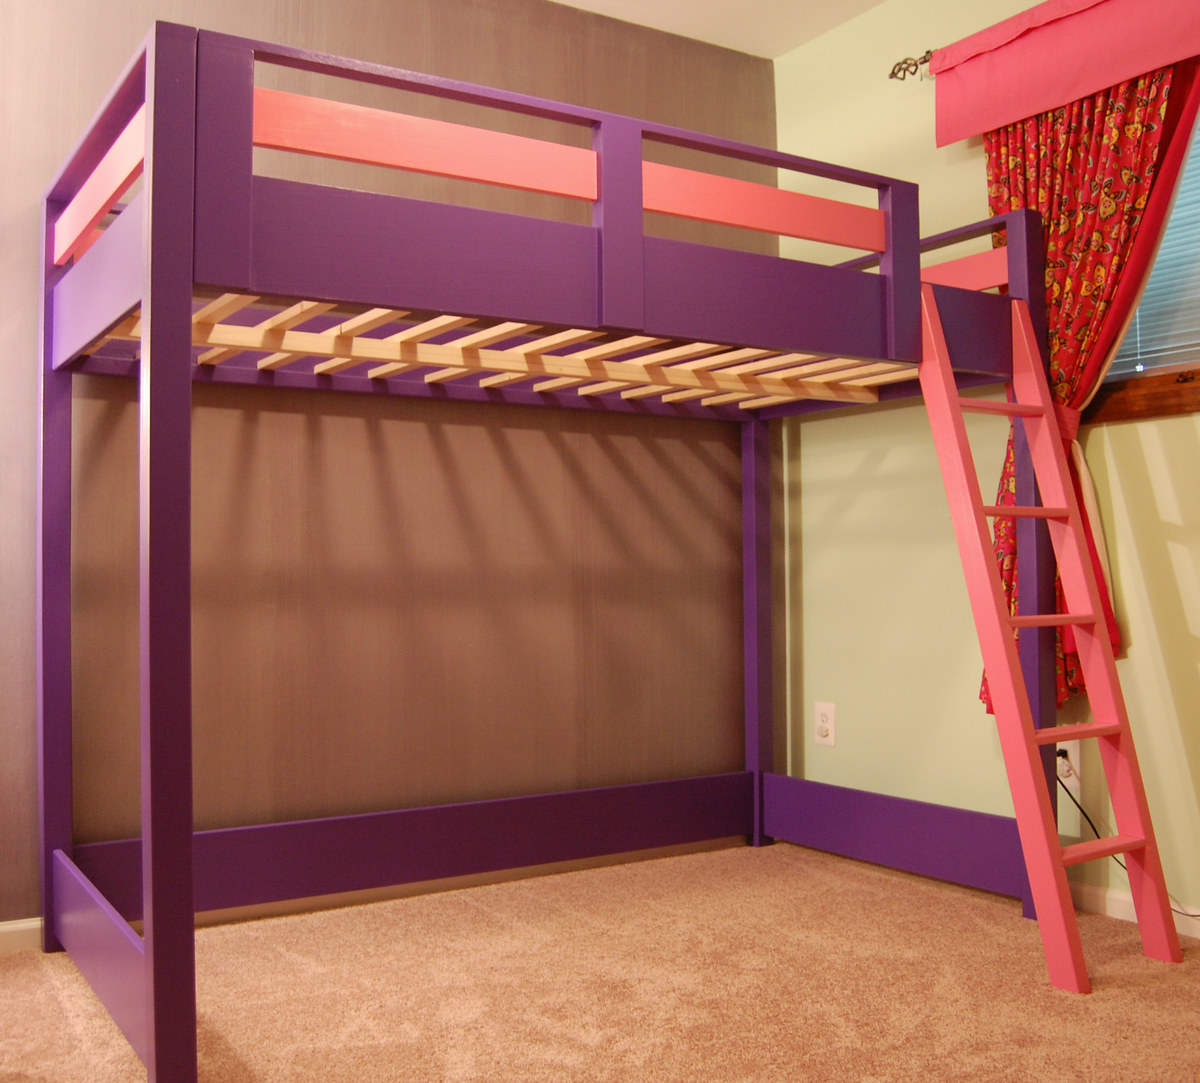 Ana white sleep and play loft bed diy projects Loft bed plans